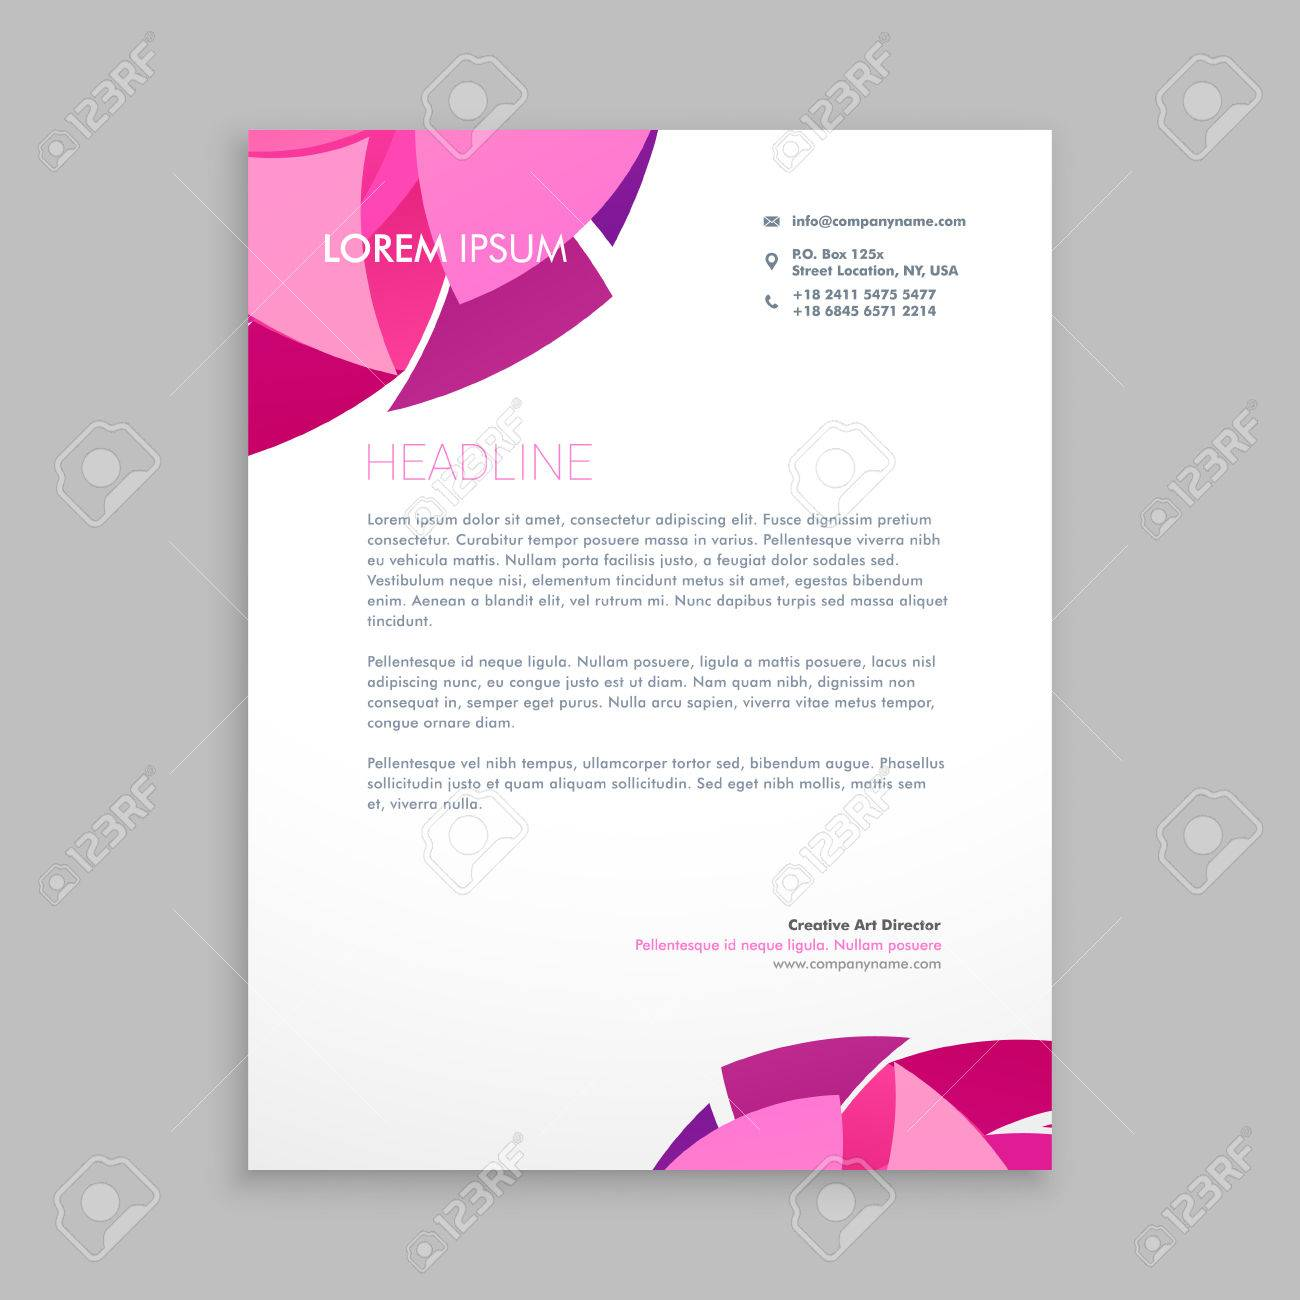 abstract business letterhead design royalty free cliparts vectors